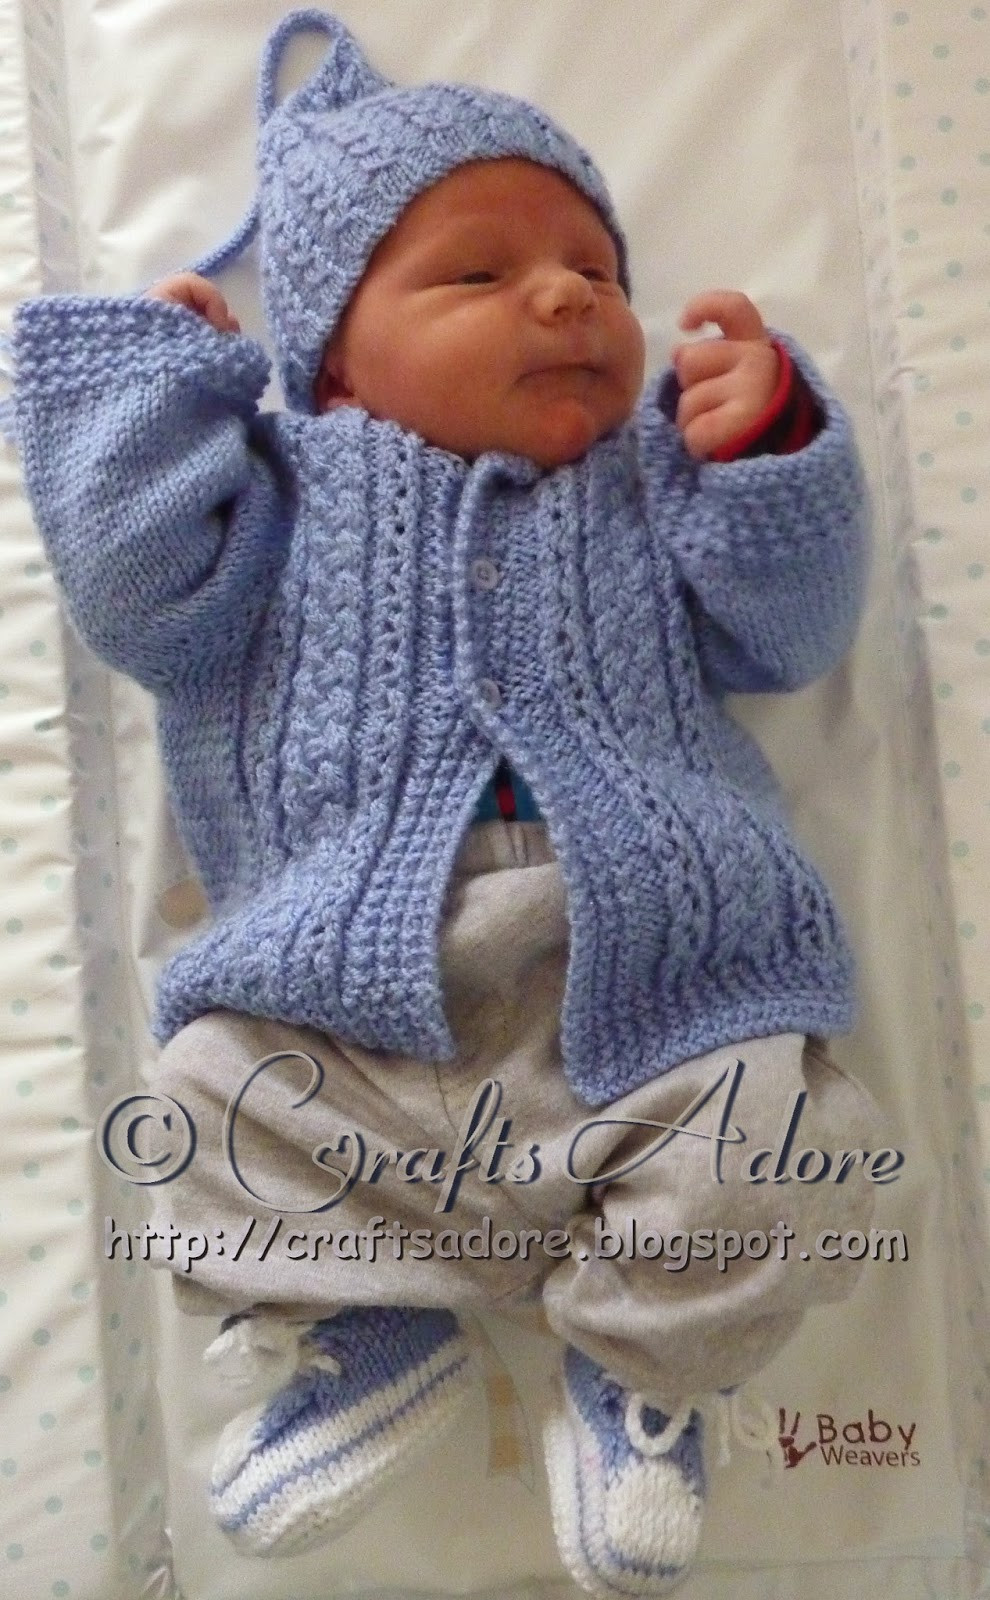 """Lovely Craftsadore """"handsome Cables"""" Knitted Baby Boy Cardigan Free Baby Patterns Of Top 48 Ideas Free Baby Patterns"""